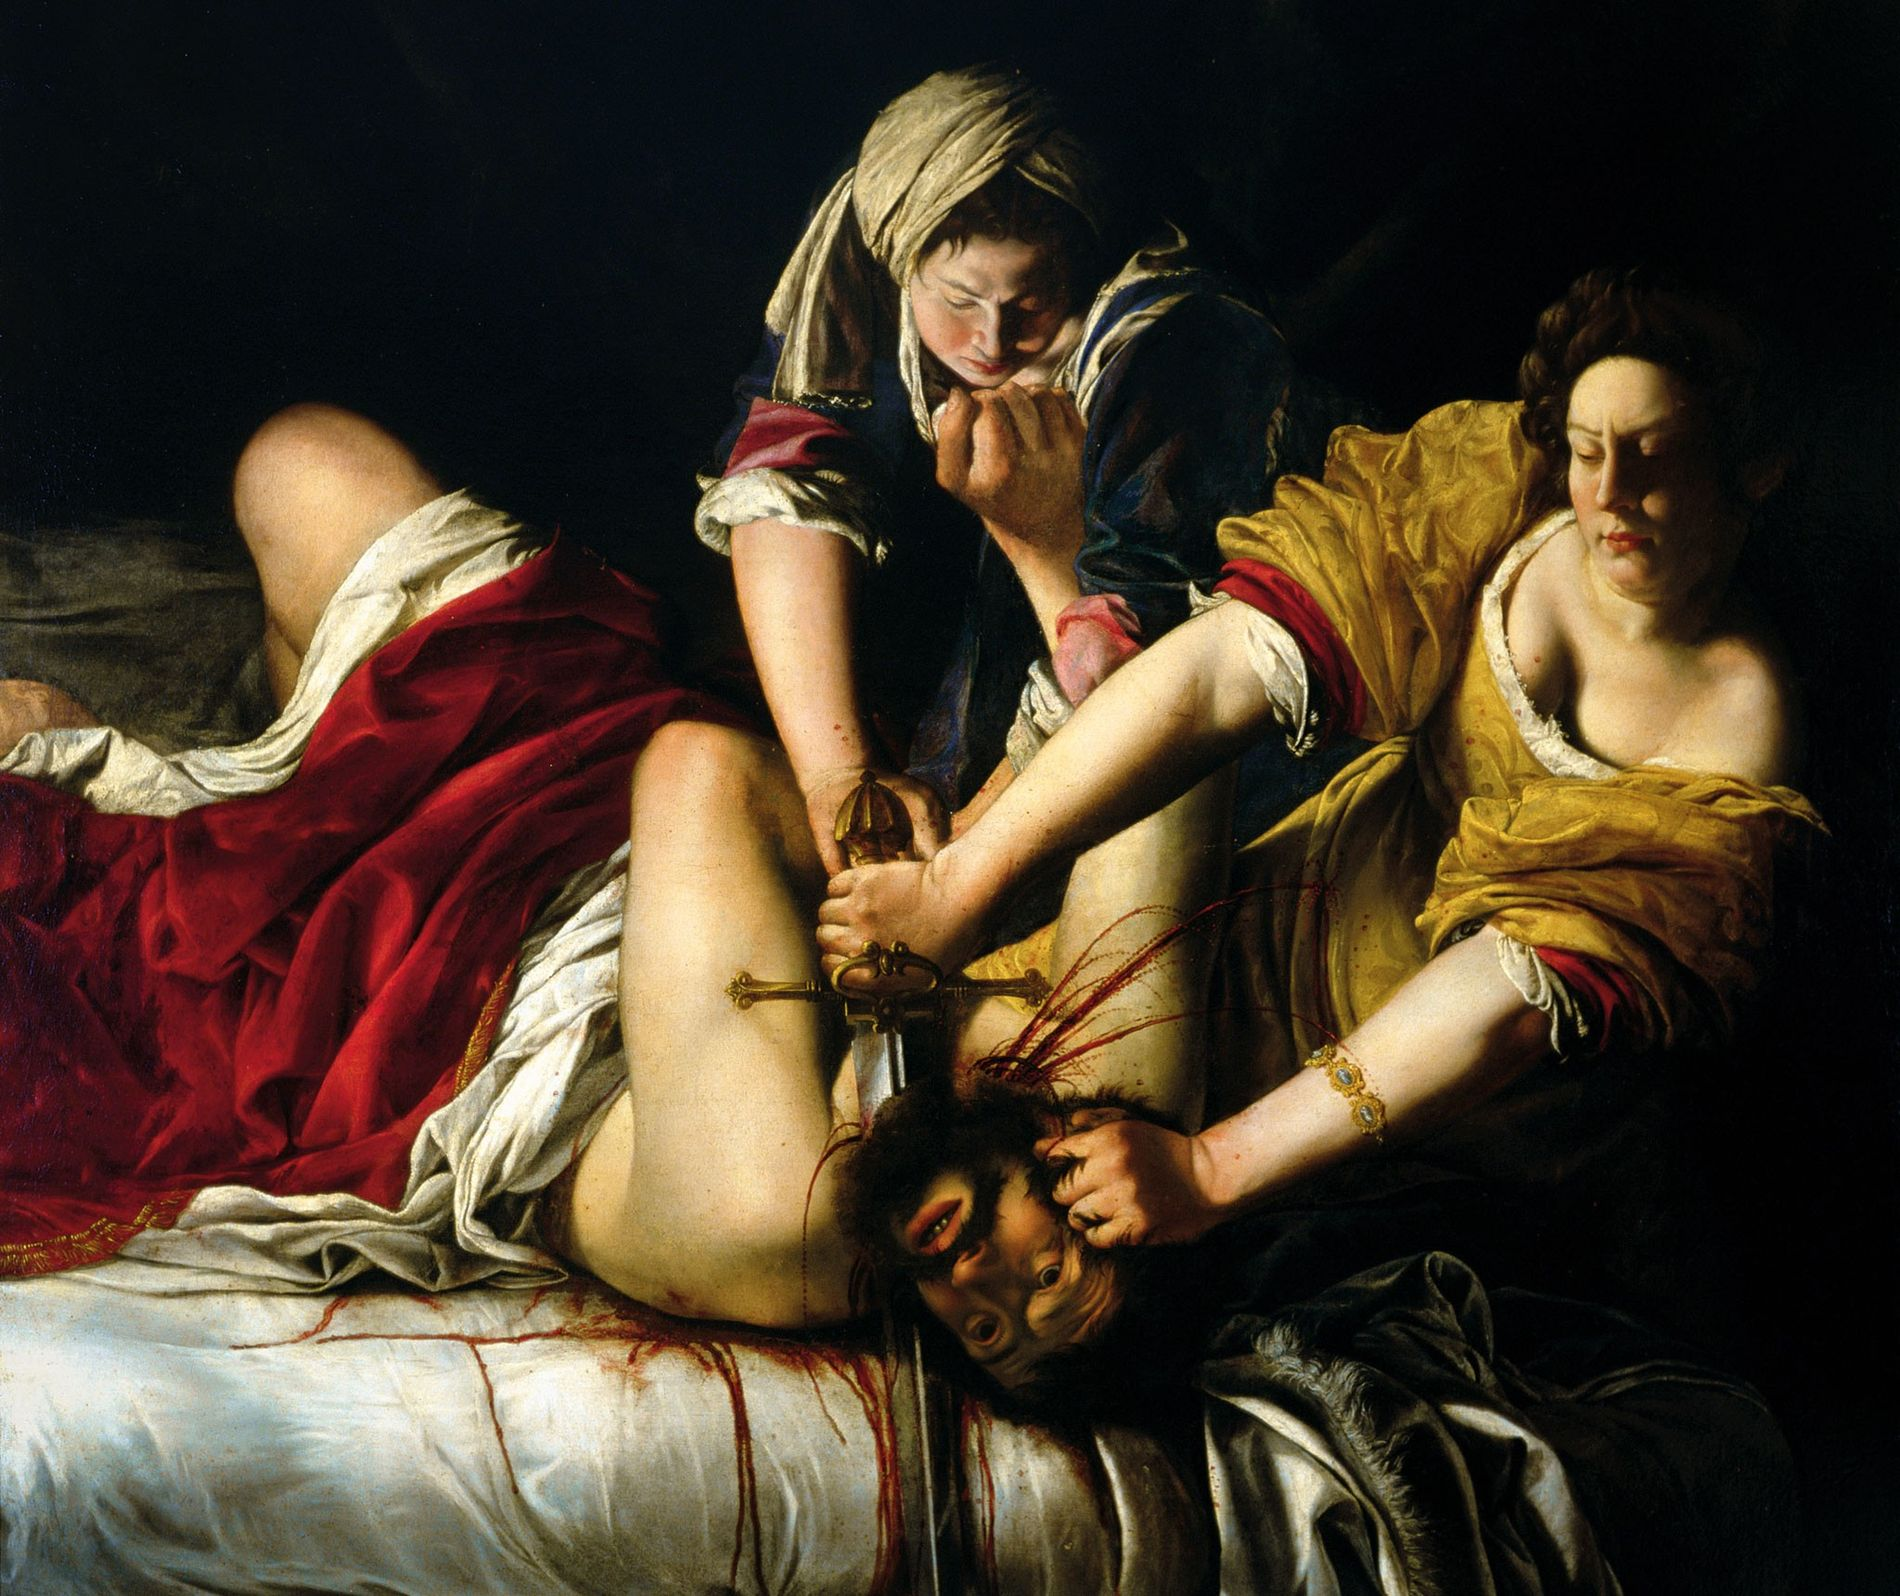 """Gentileschi's 1620 """"Judith Beheading Holofernes"""" portrays an Old Testament story of the Israelite widow Judith who ..."""